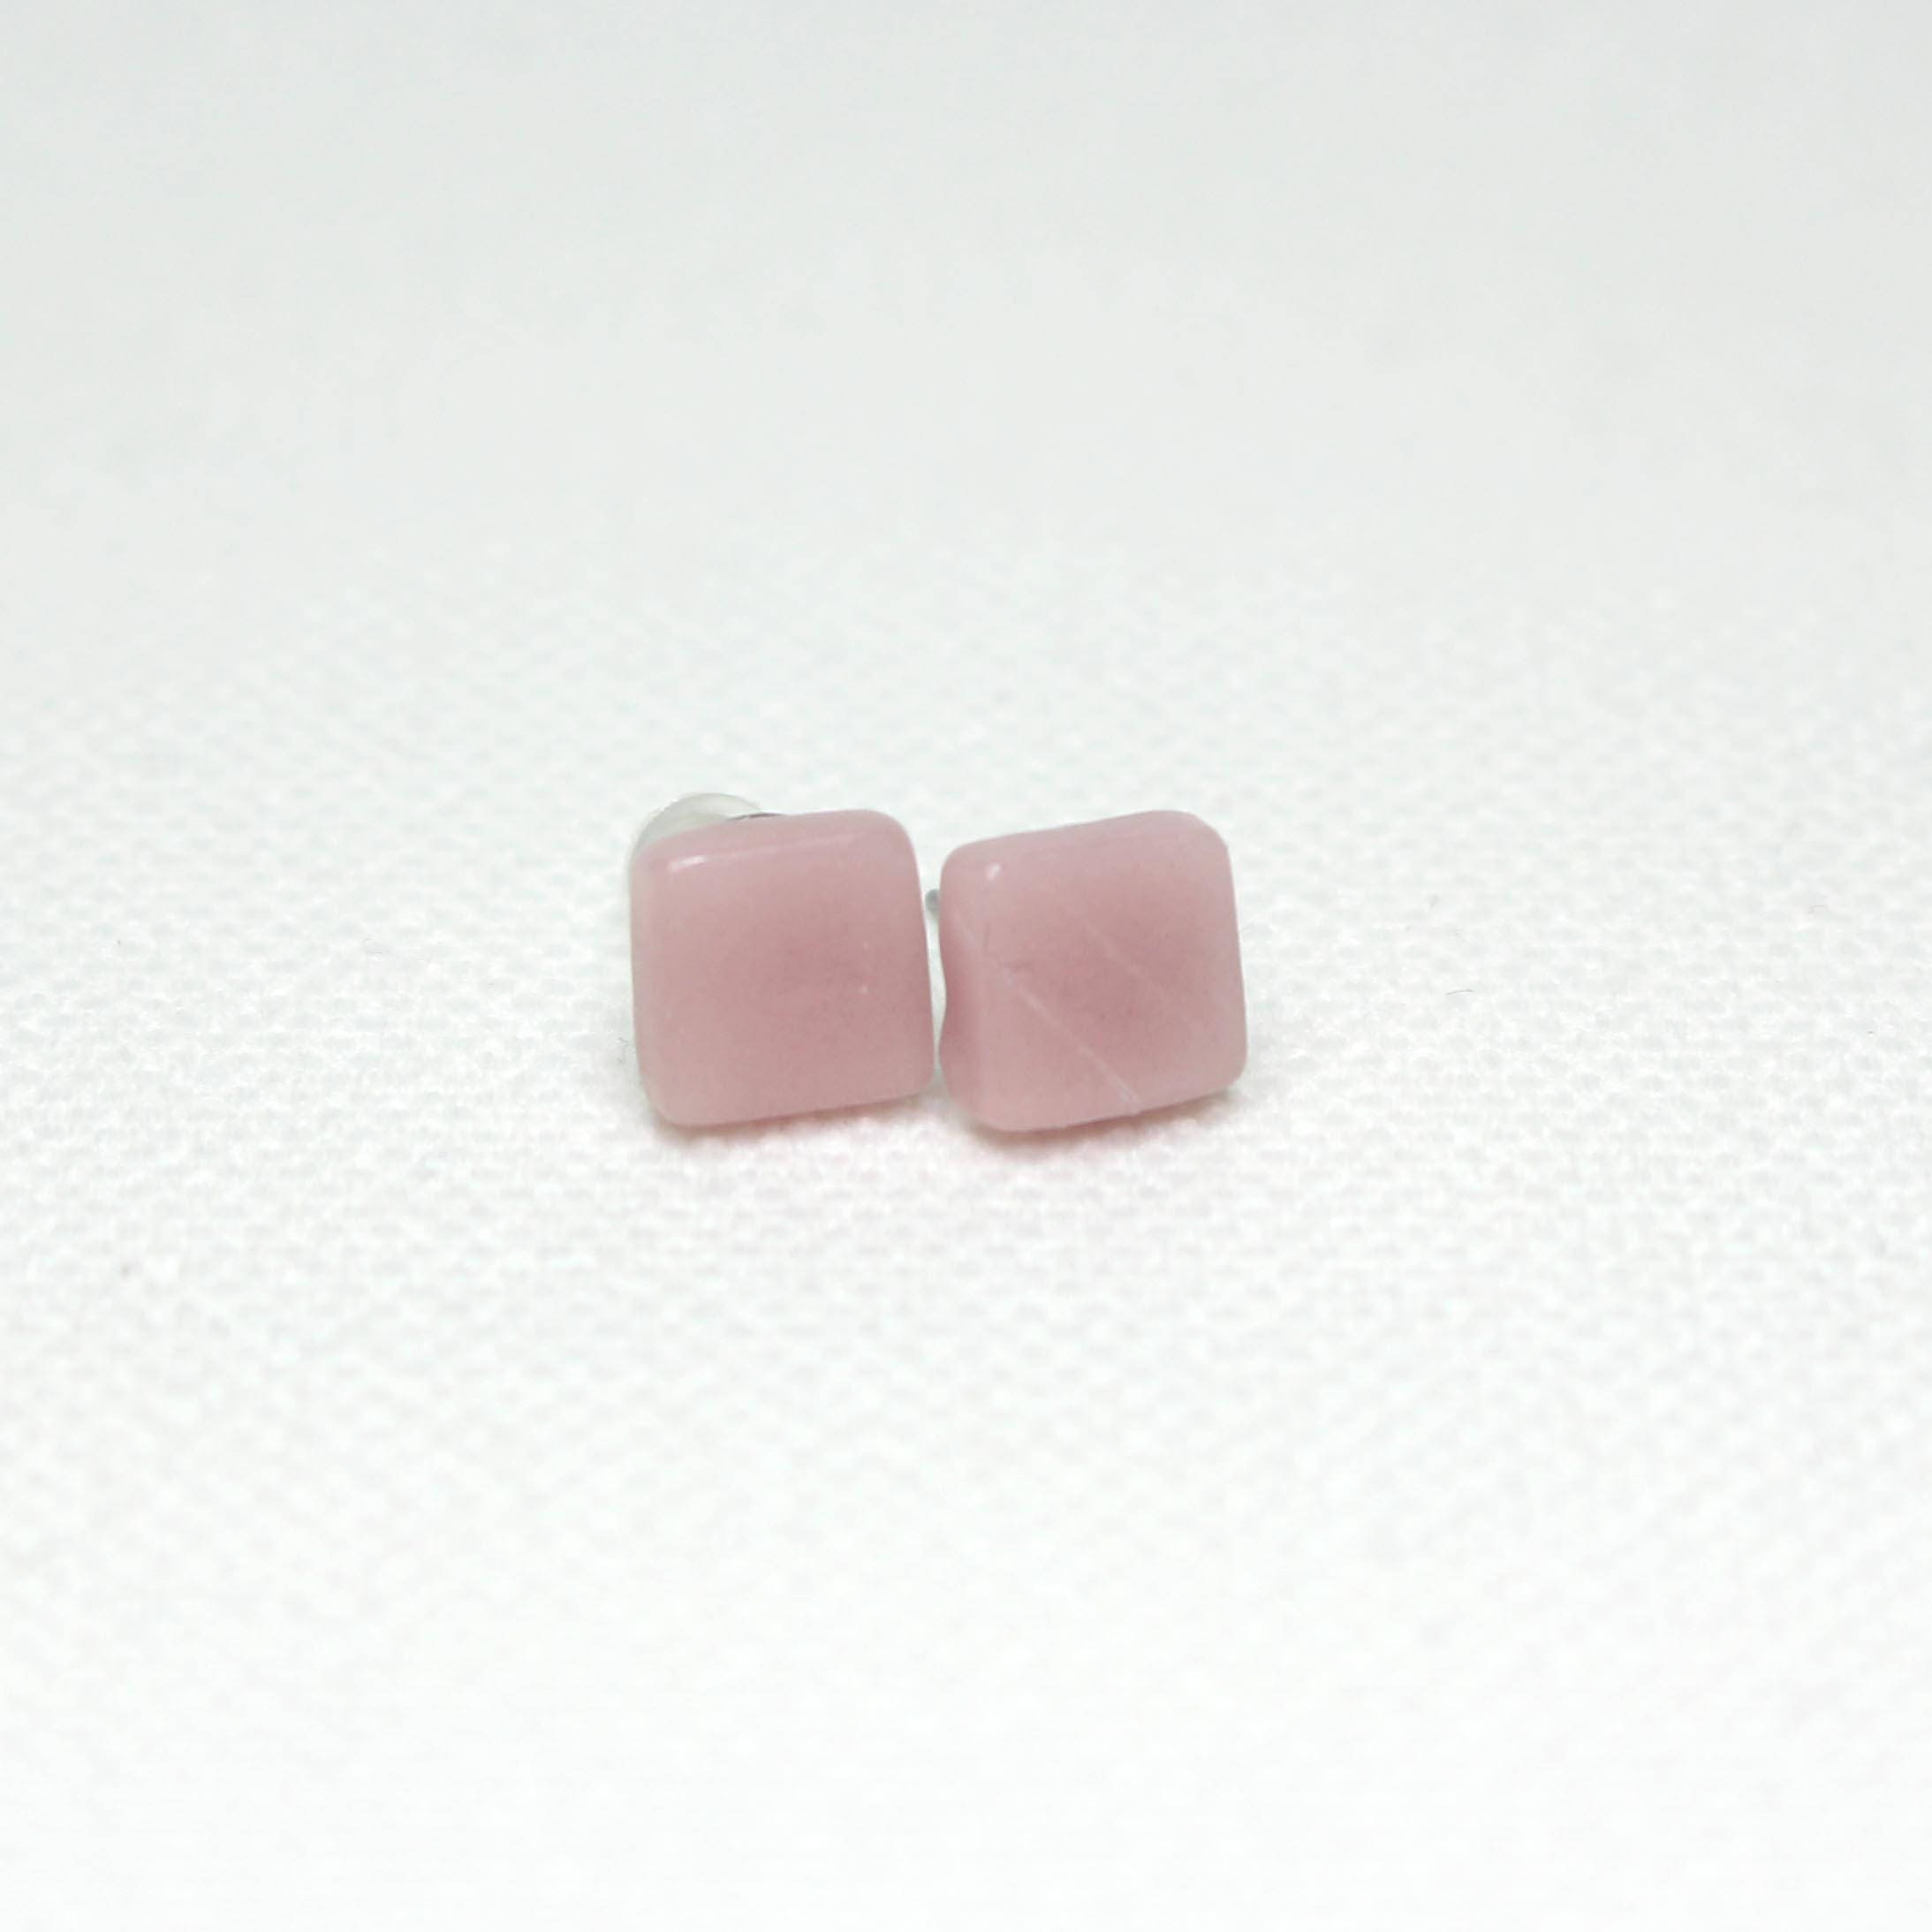 obsessed products studs enamel ros rose earrings wine by glitter glass signature prep acs stud